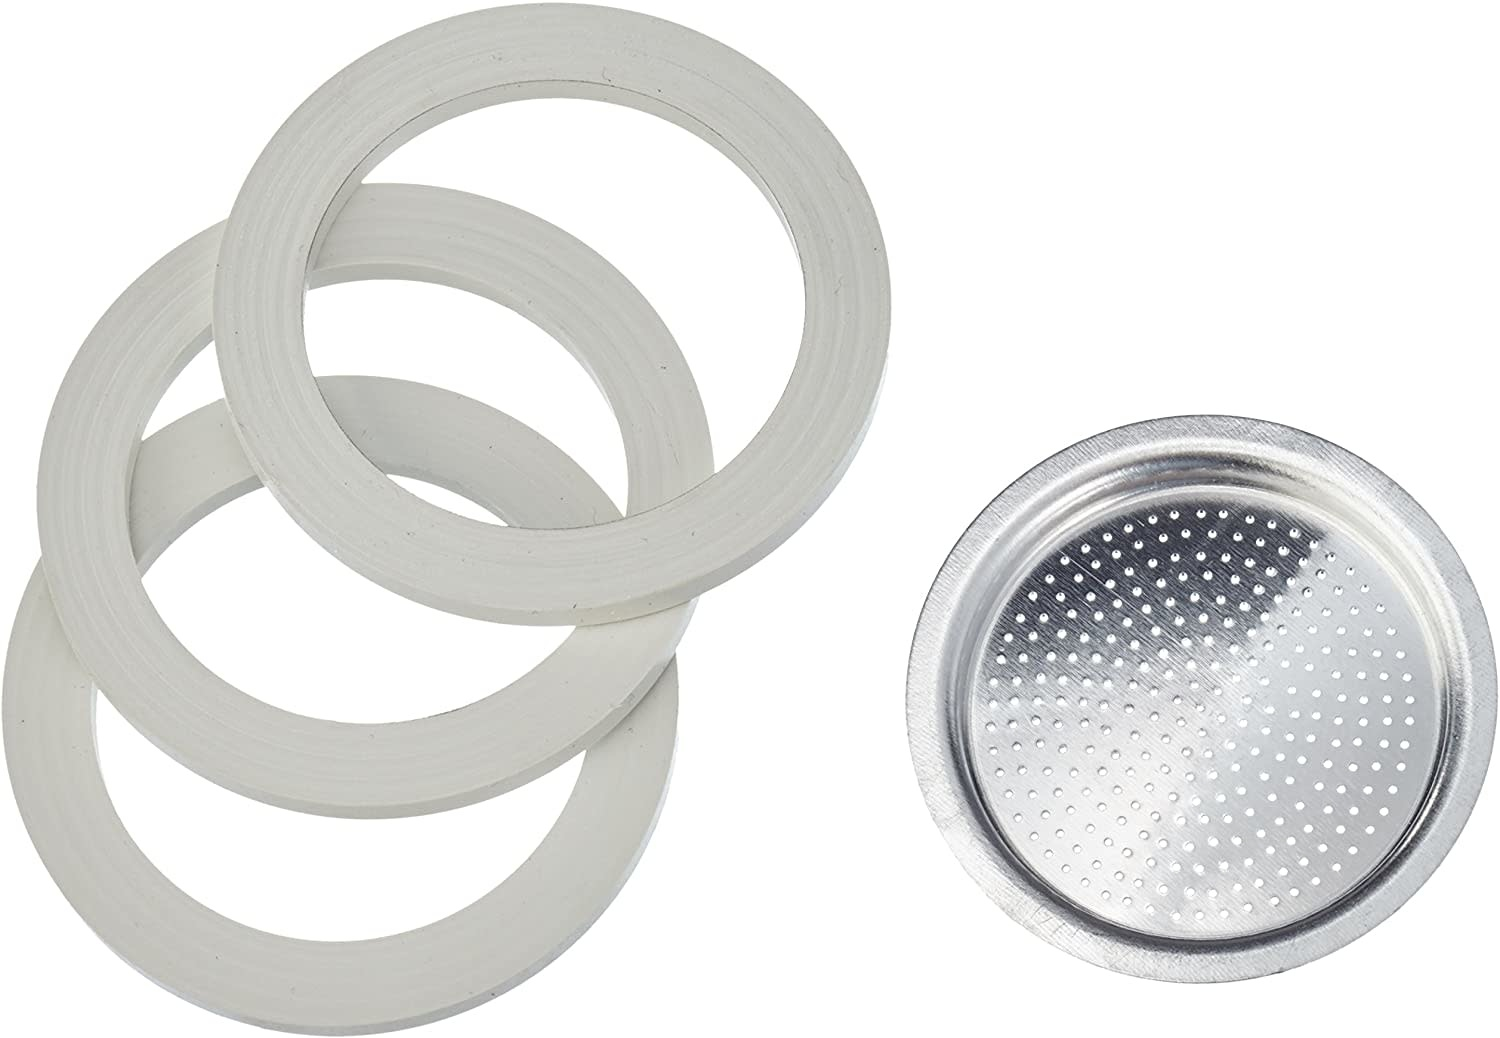 Bialetti Bialetti 3 Gasket + 1 Filter for 6 Cups